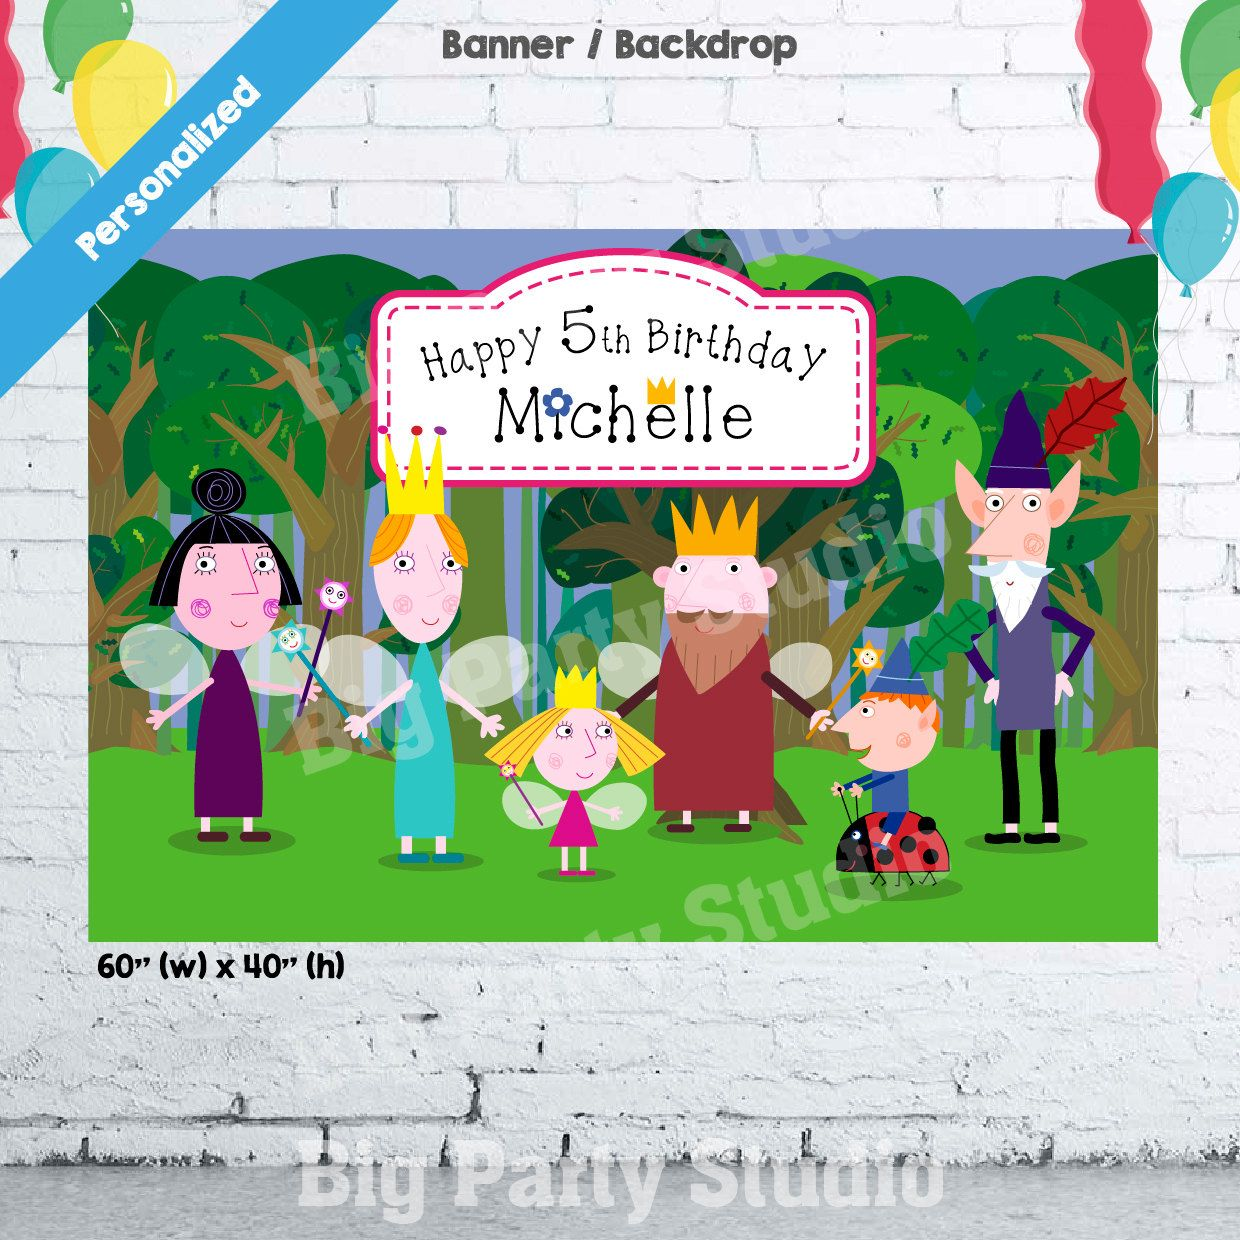 Ben And Holly Banner Ben And Holly Birthday Backdrop Ben Holly Party Poster 60 Quot W X 40 Quot H Birthday Backdrop Ben And Holly Personalized Banners